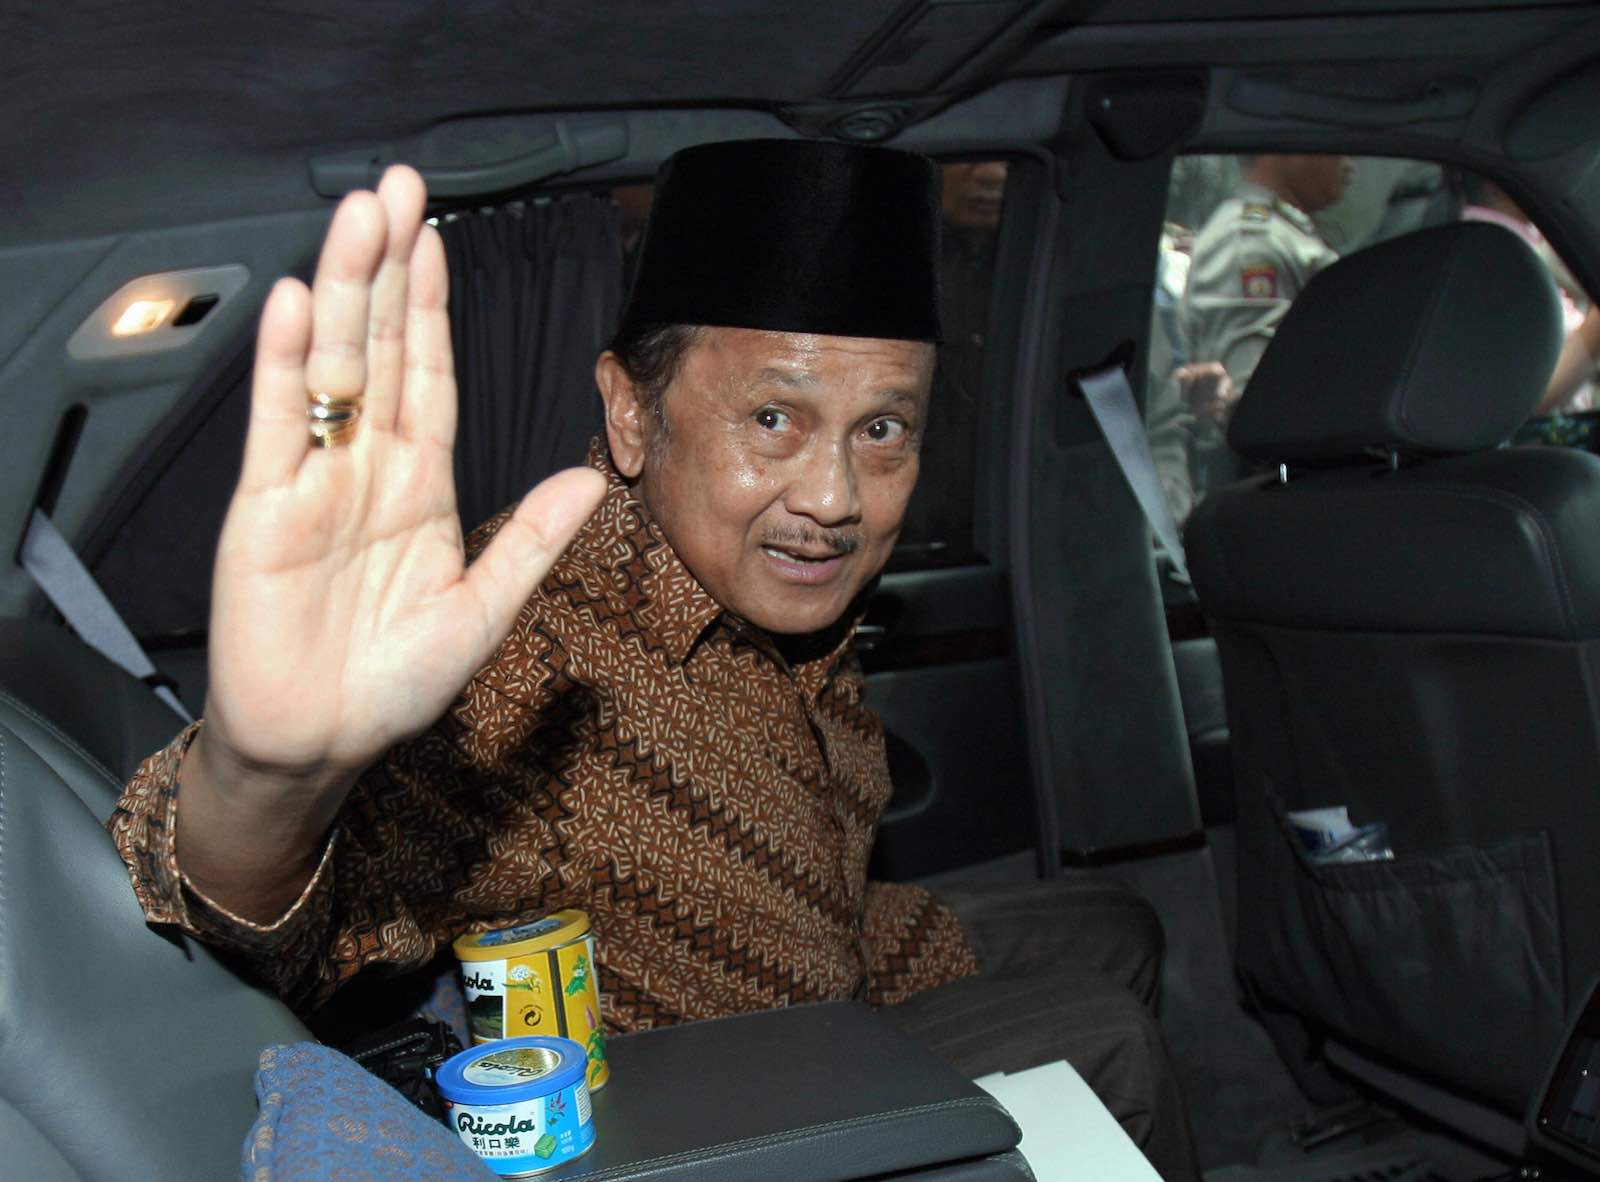 Former Indonesian President BJ Habibie in 2007 (Photo: Adek Berry via Getty)